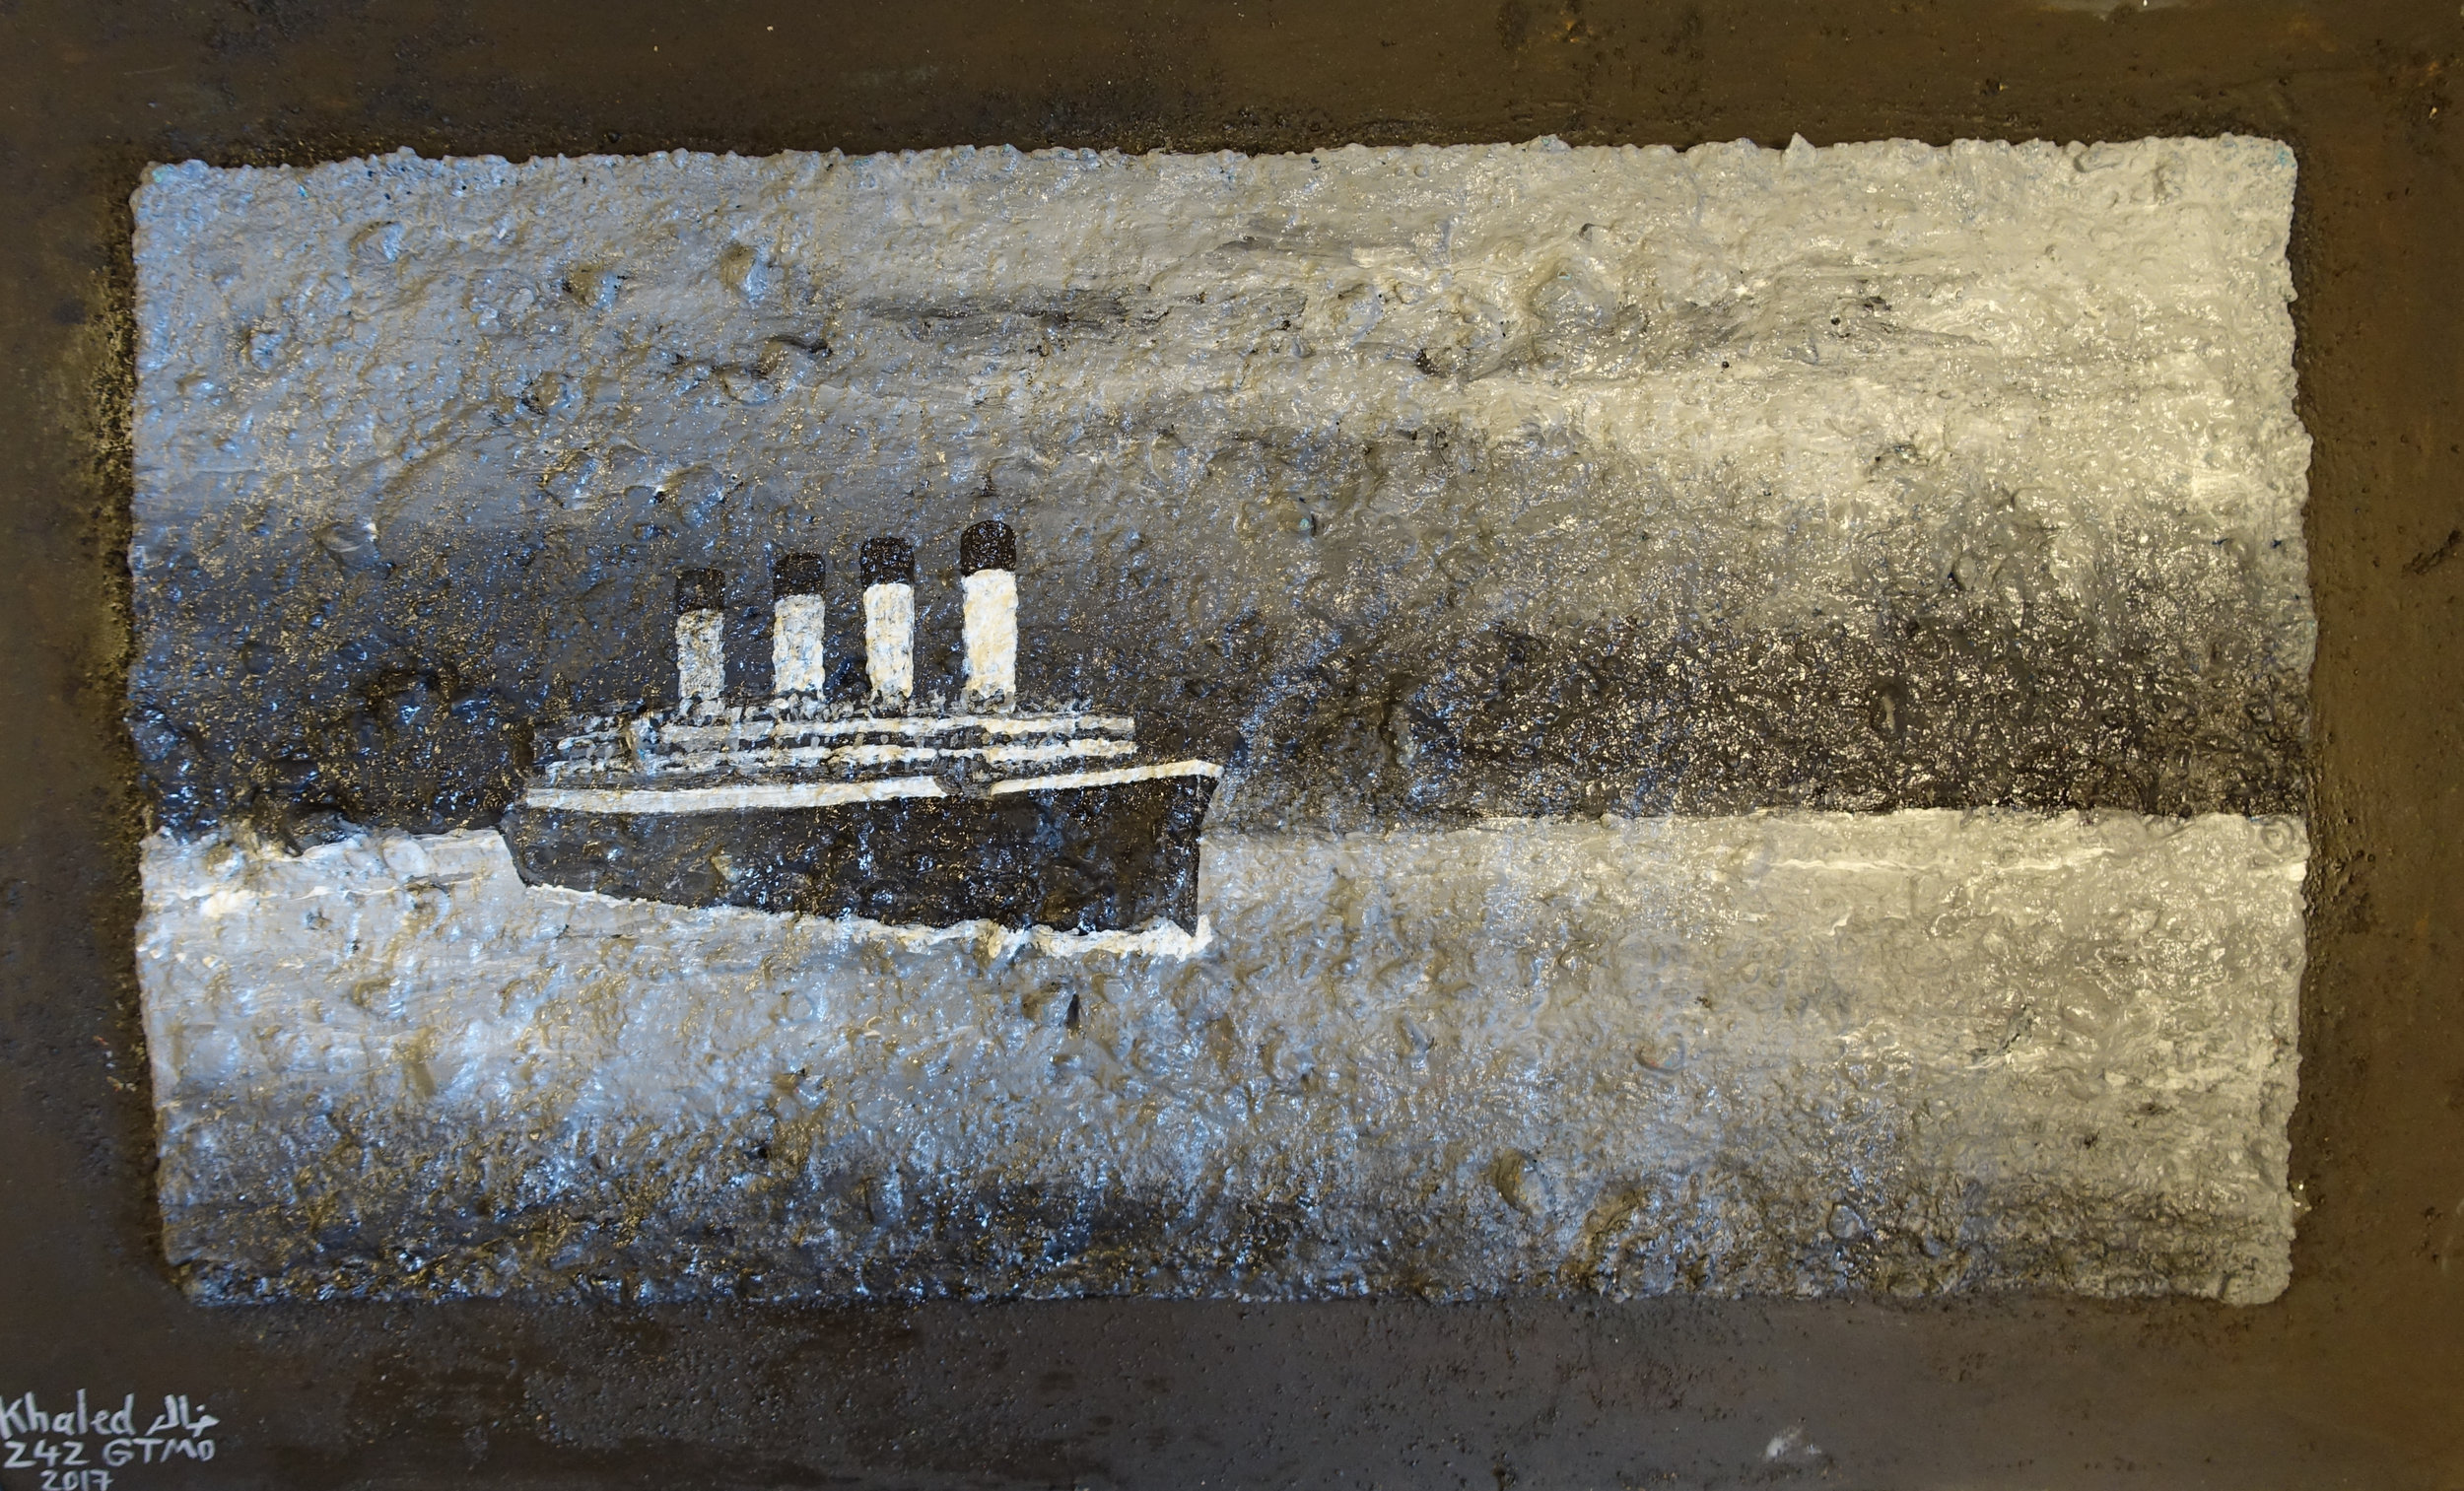 Khalid Qasim, Titanic in Black and White, 2017, paint over gravel mixed with glue.